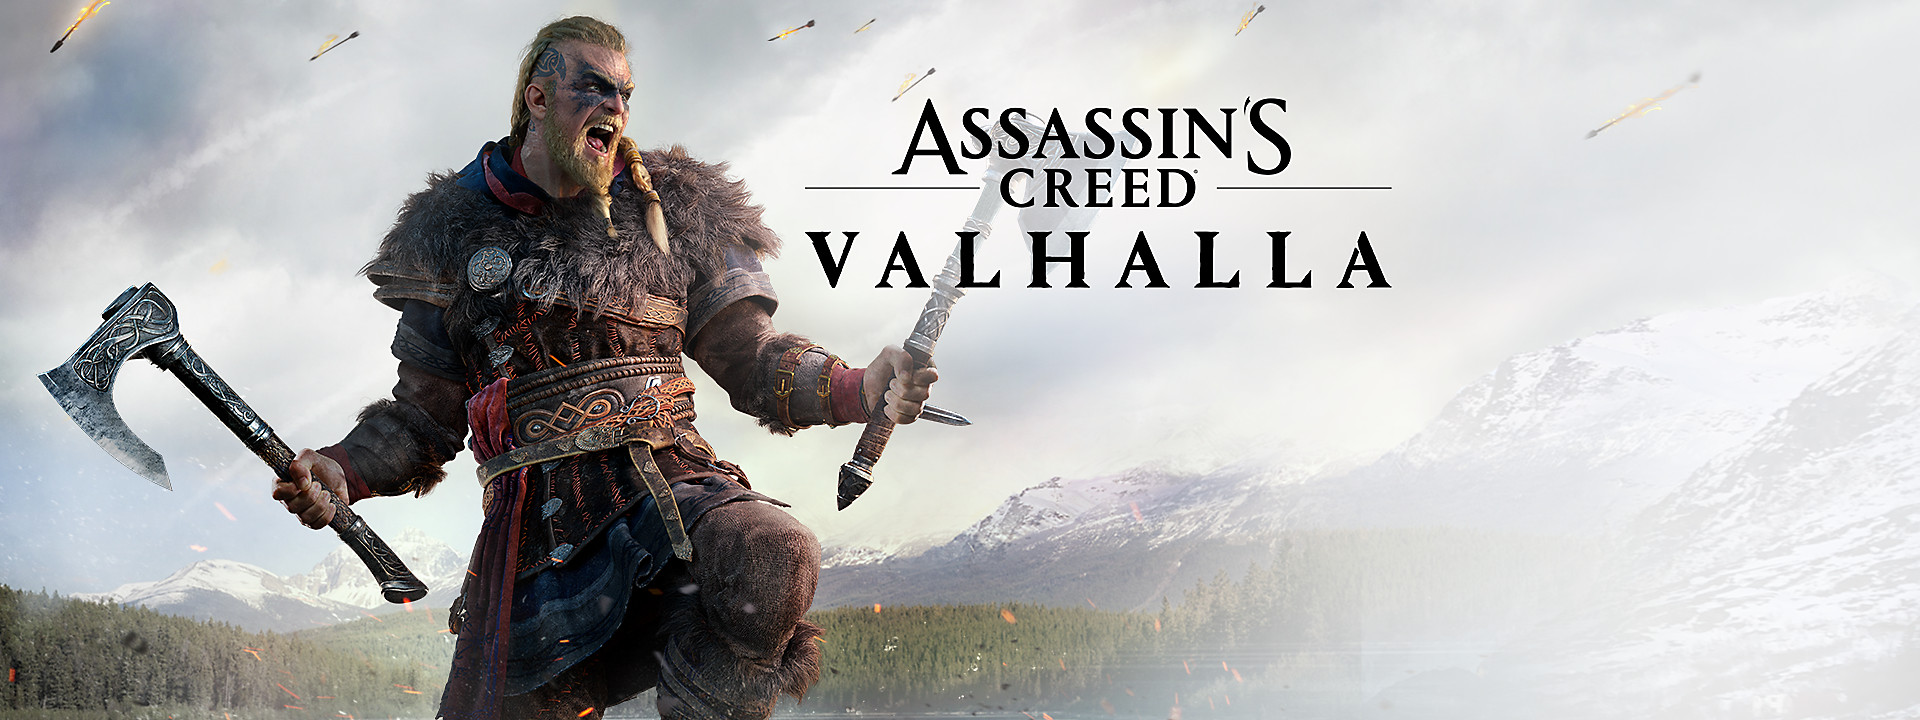 Assassin's Creed Valhalla - Eivor's Fate Character Trailer